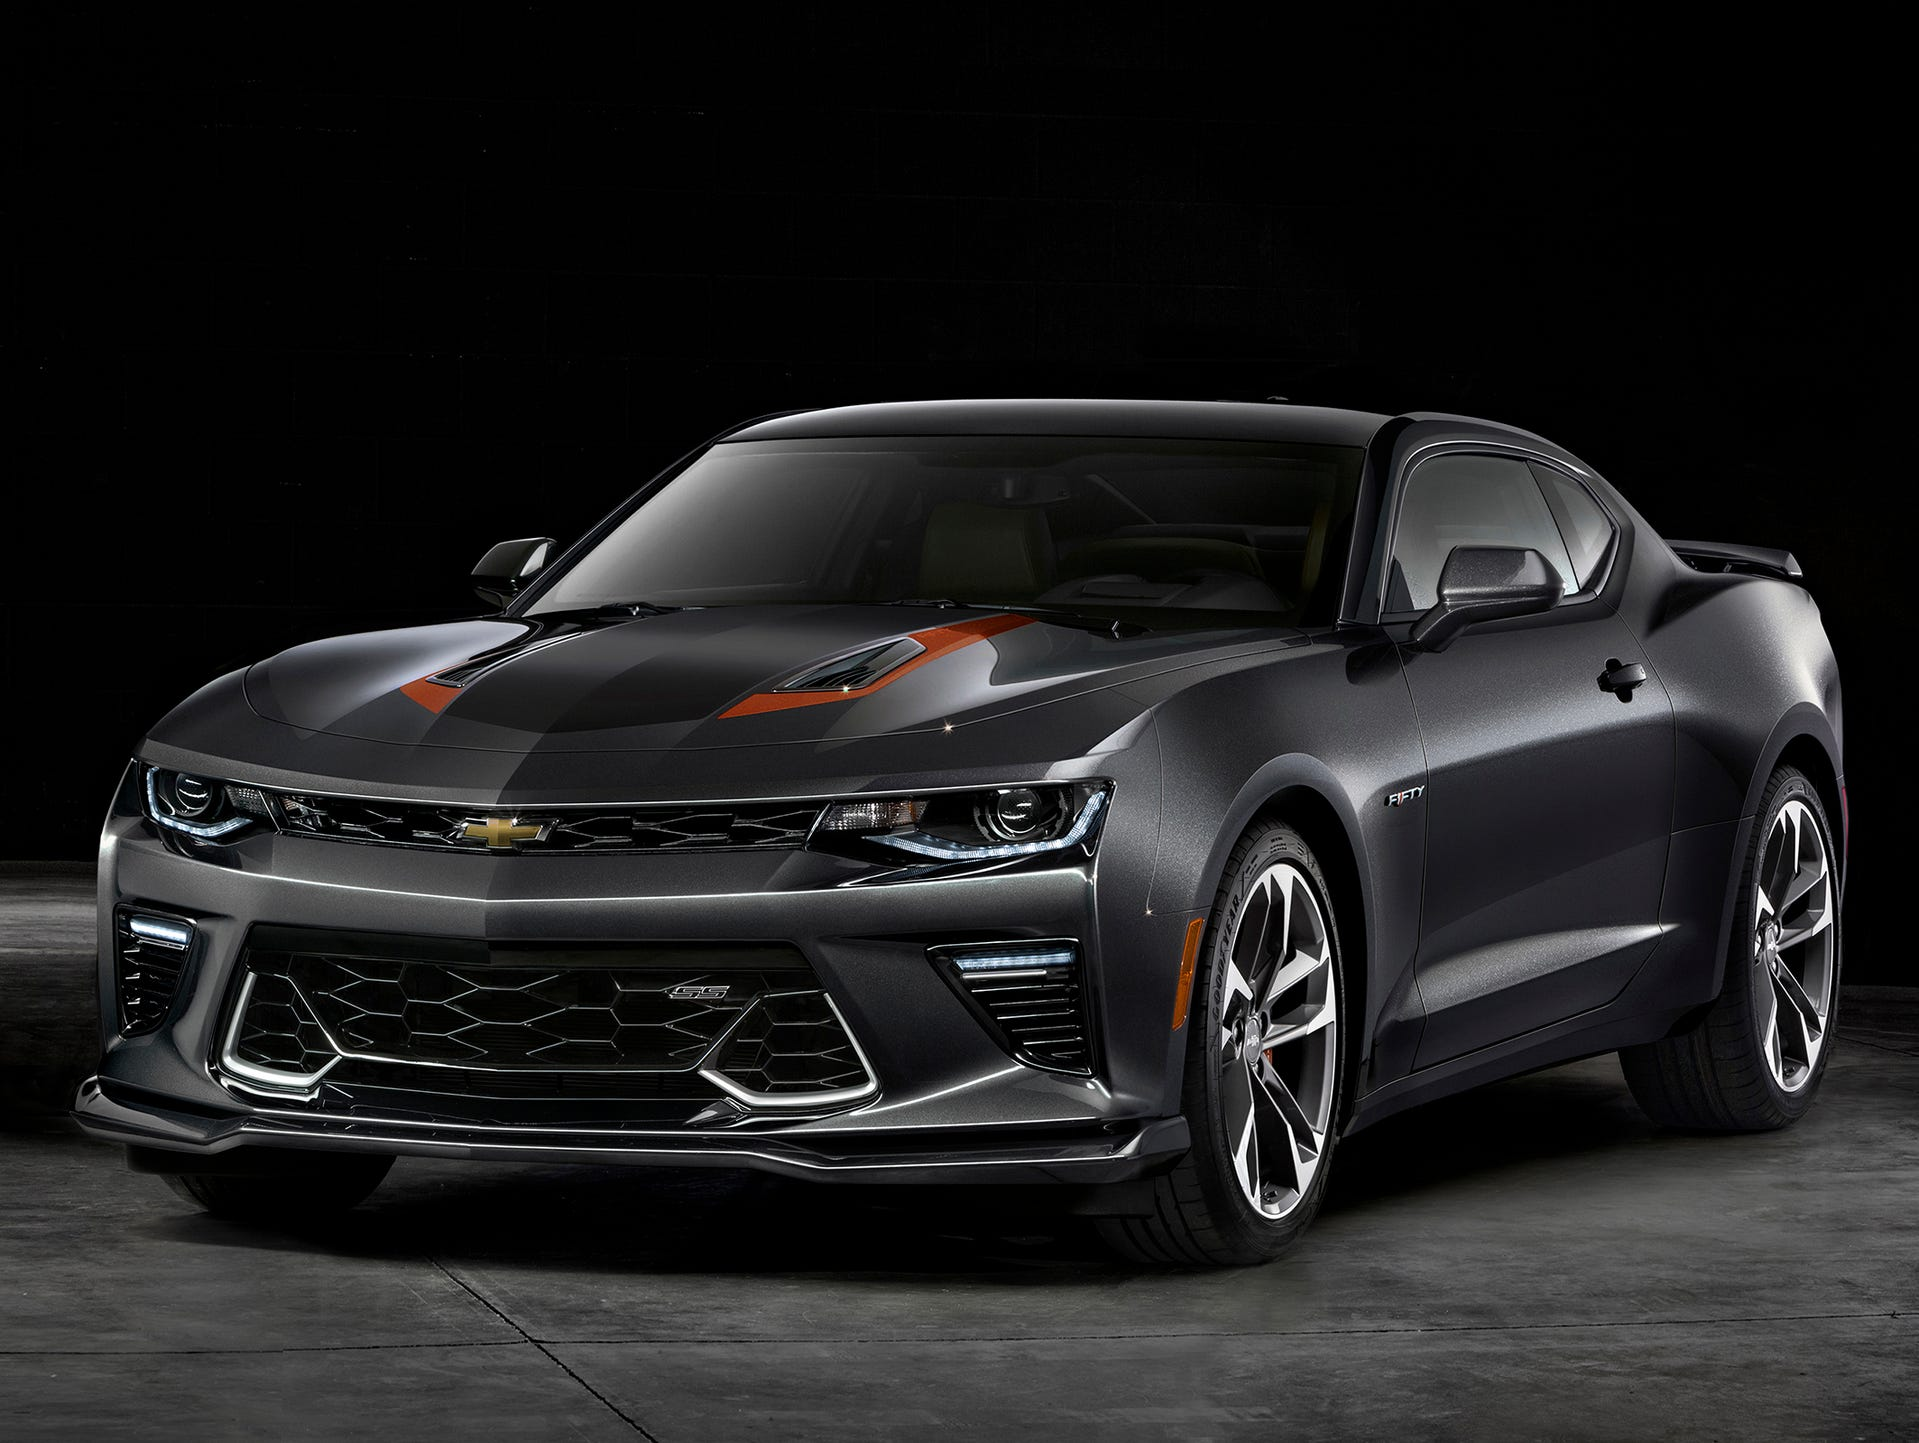 2017: Chevy will roll out the 50th Anniversary Special